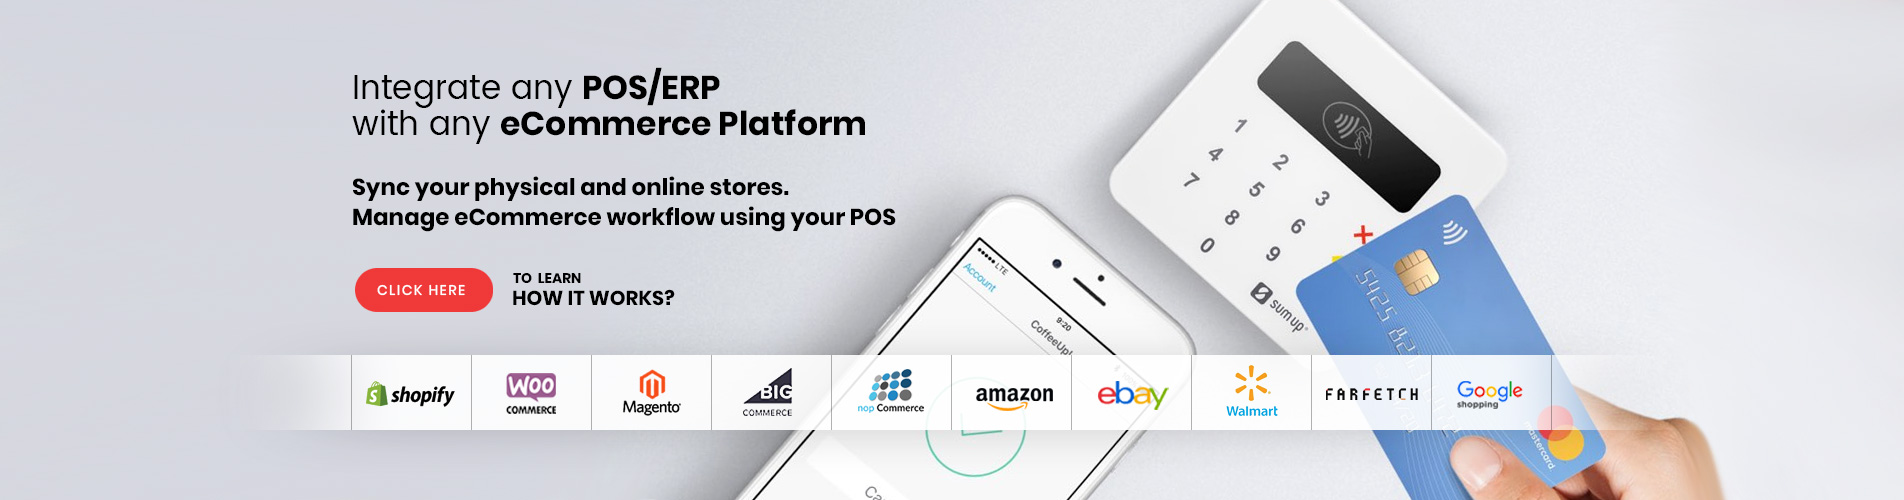 POS Integration with eCommerce - Banner